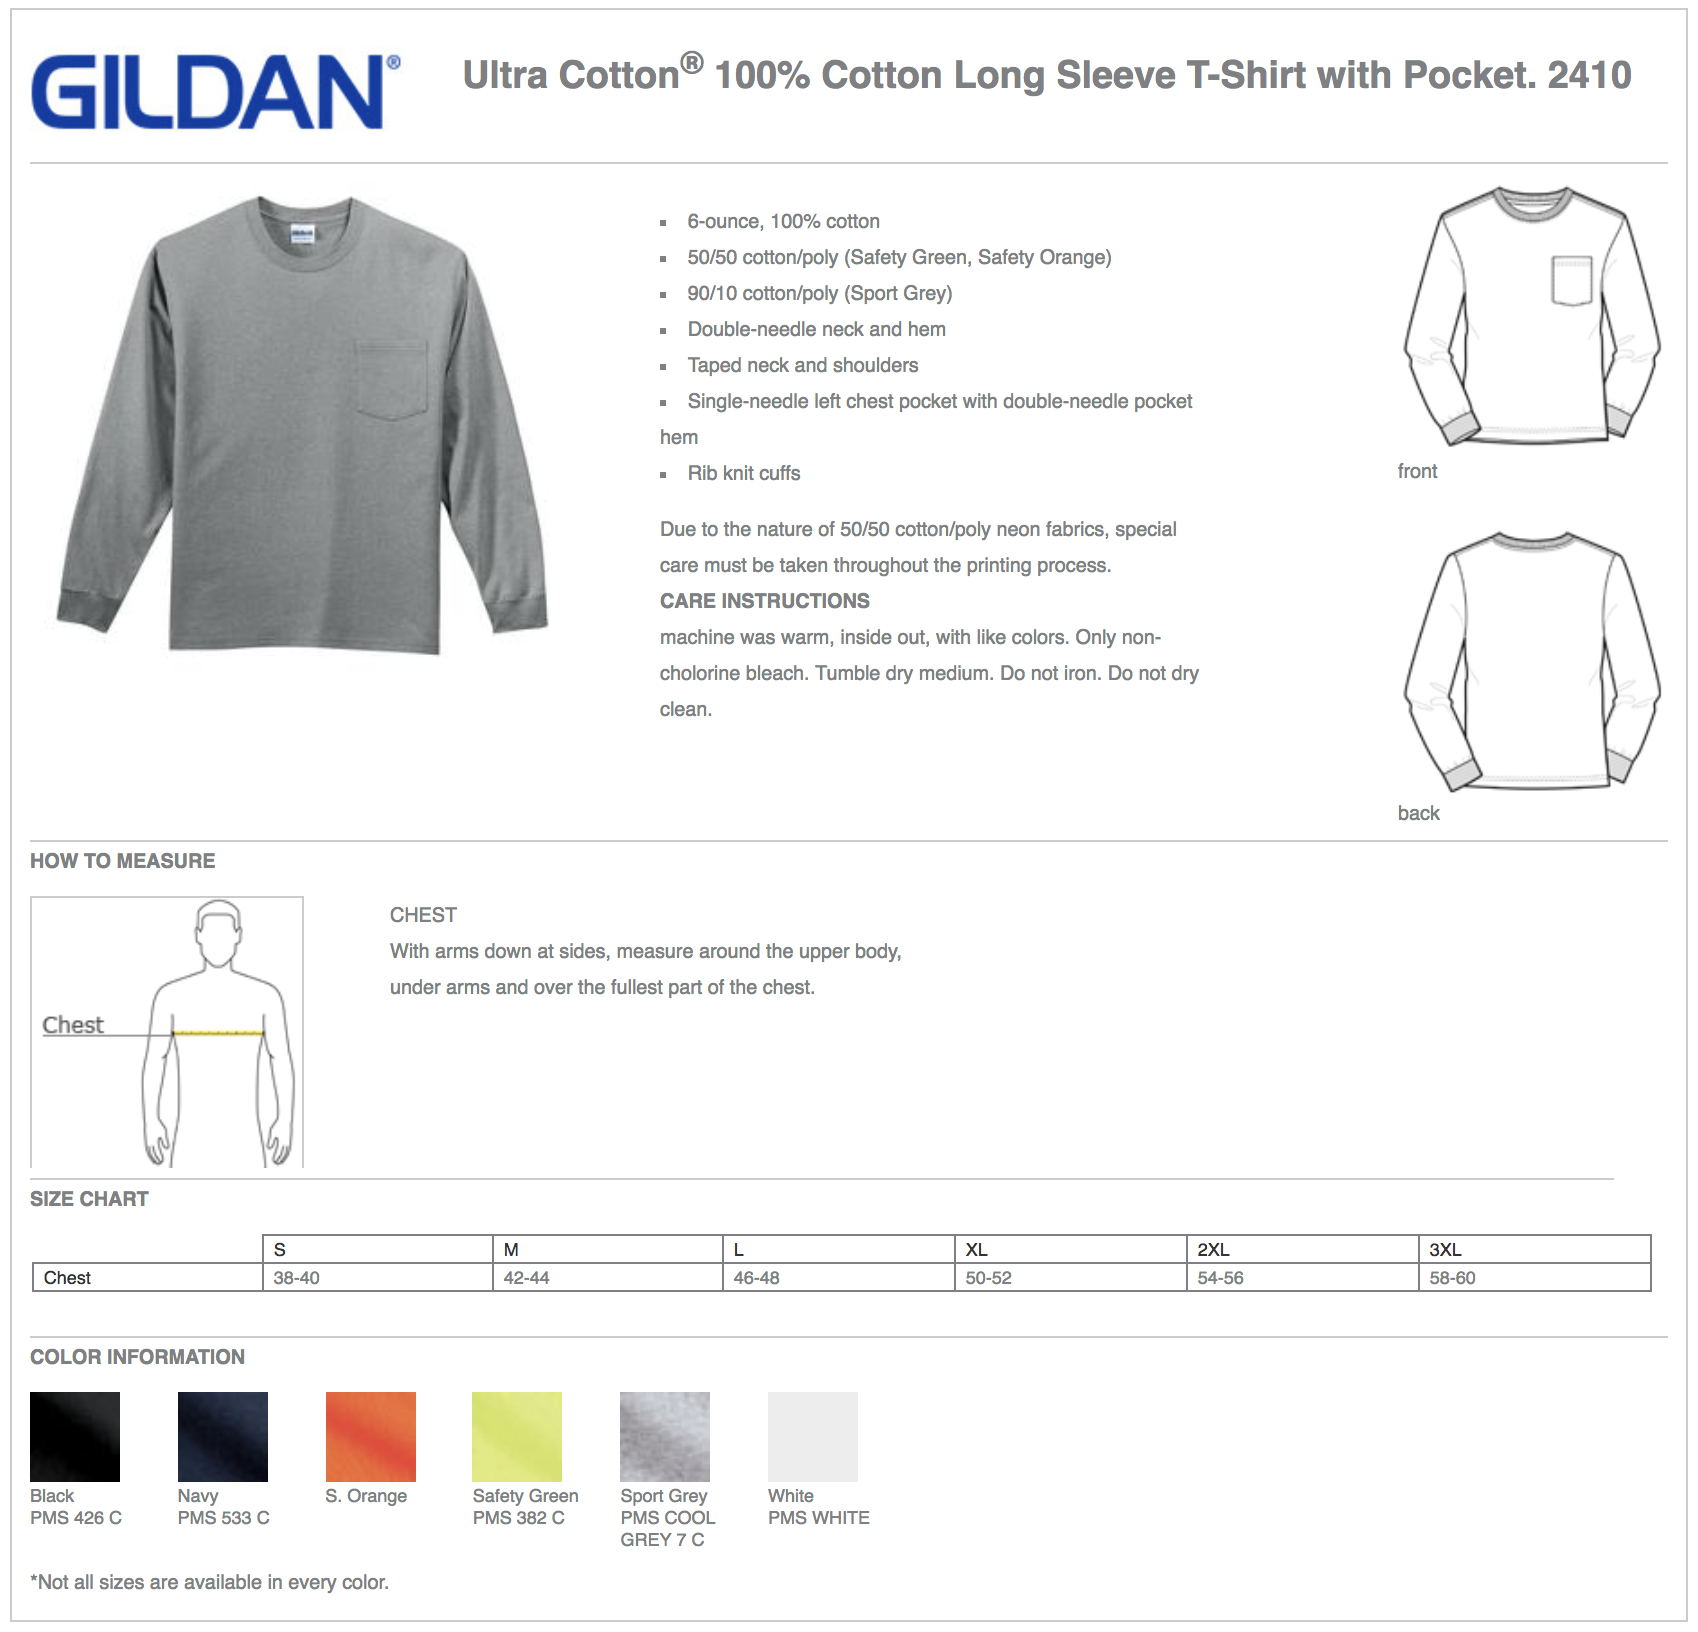 Gildan 2410 Custom Long Sleeve T-Shirts with Pocket